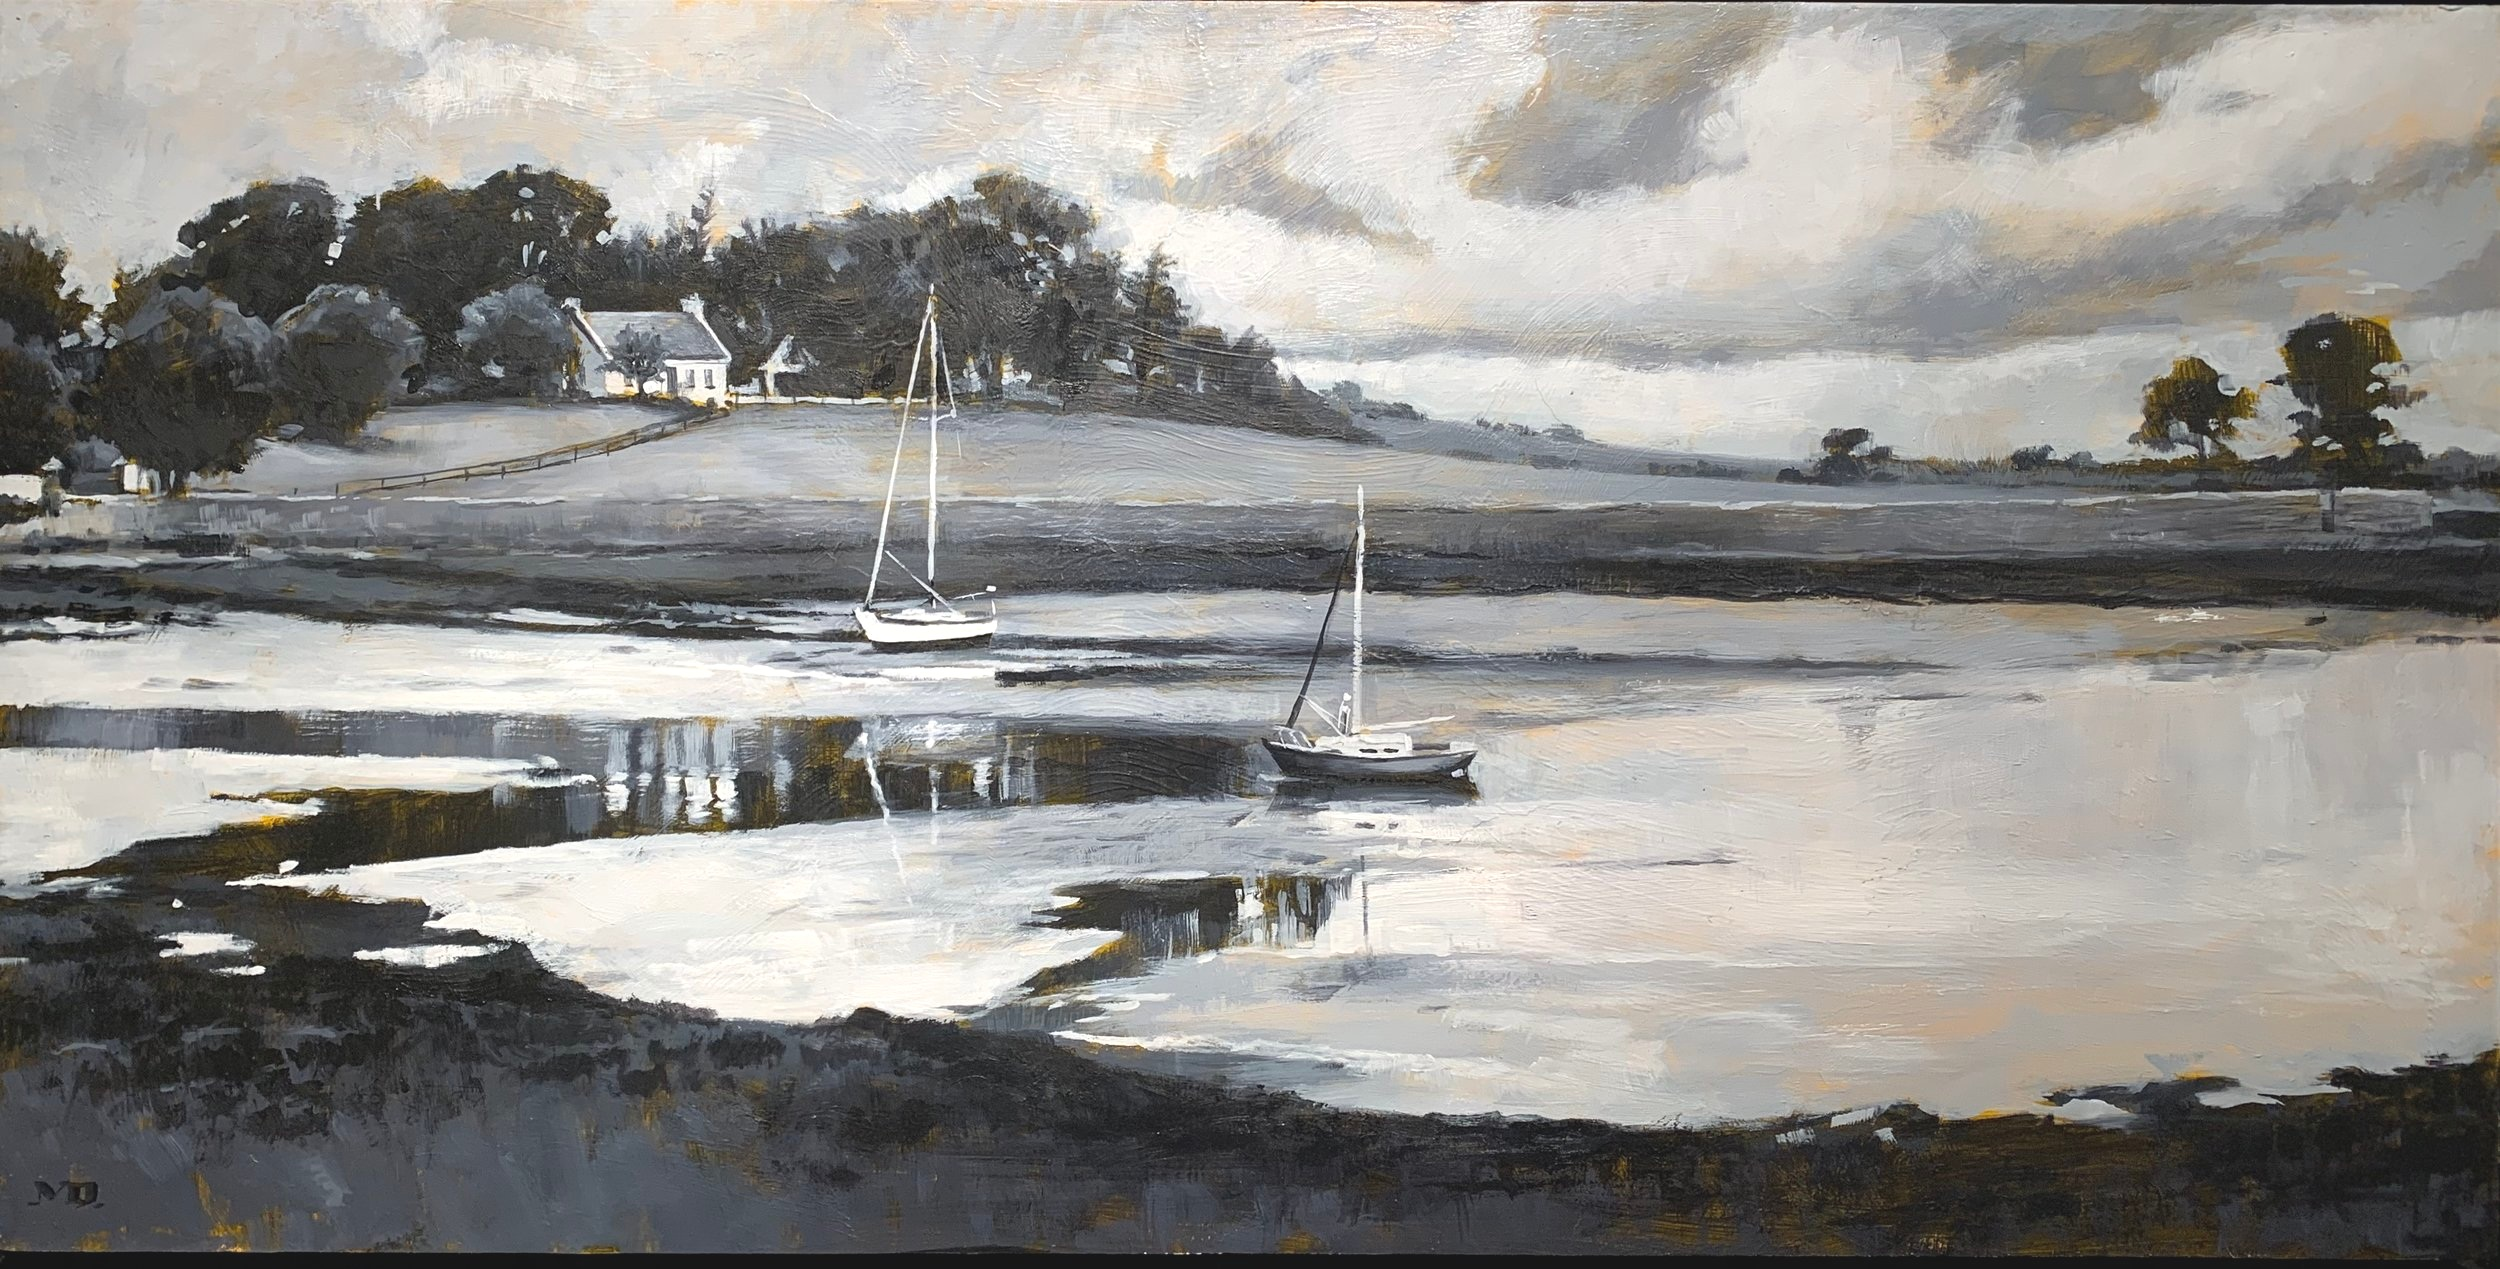 Ballyvaughan, Ireland (sold)